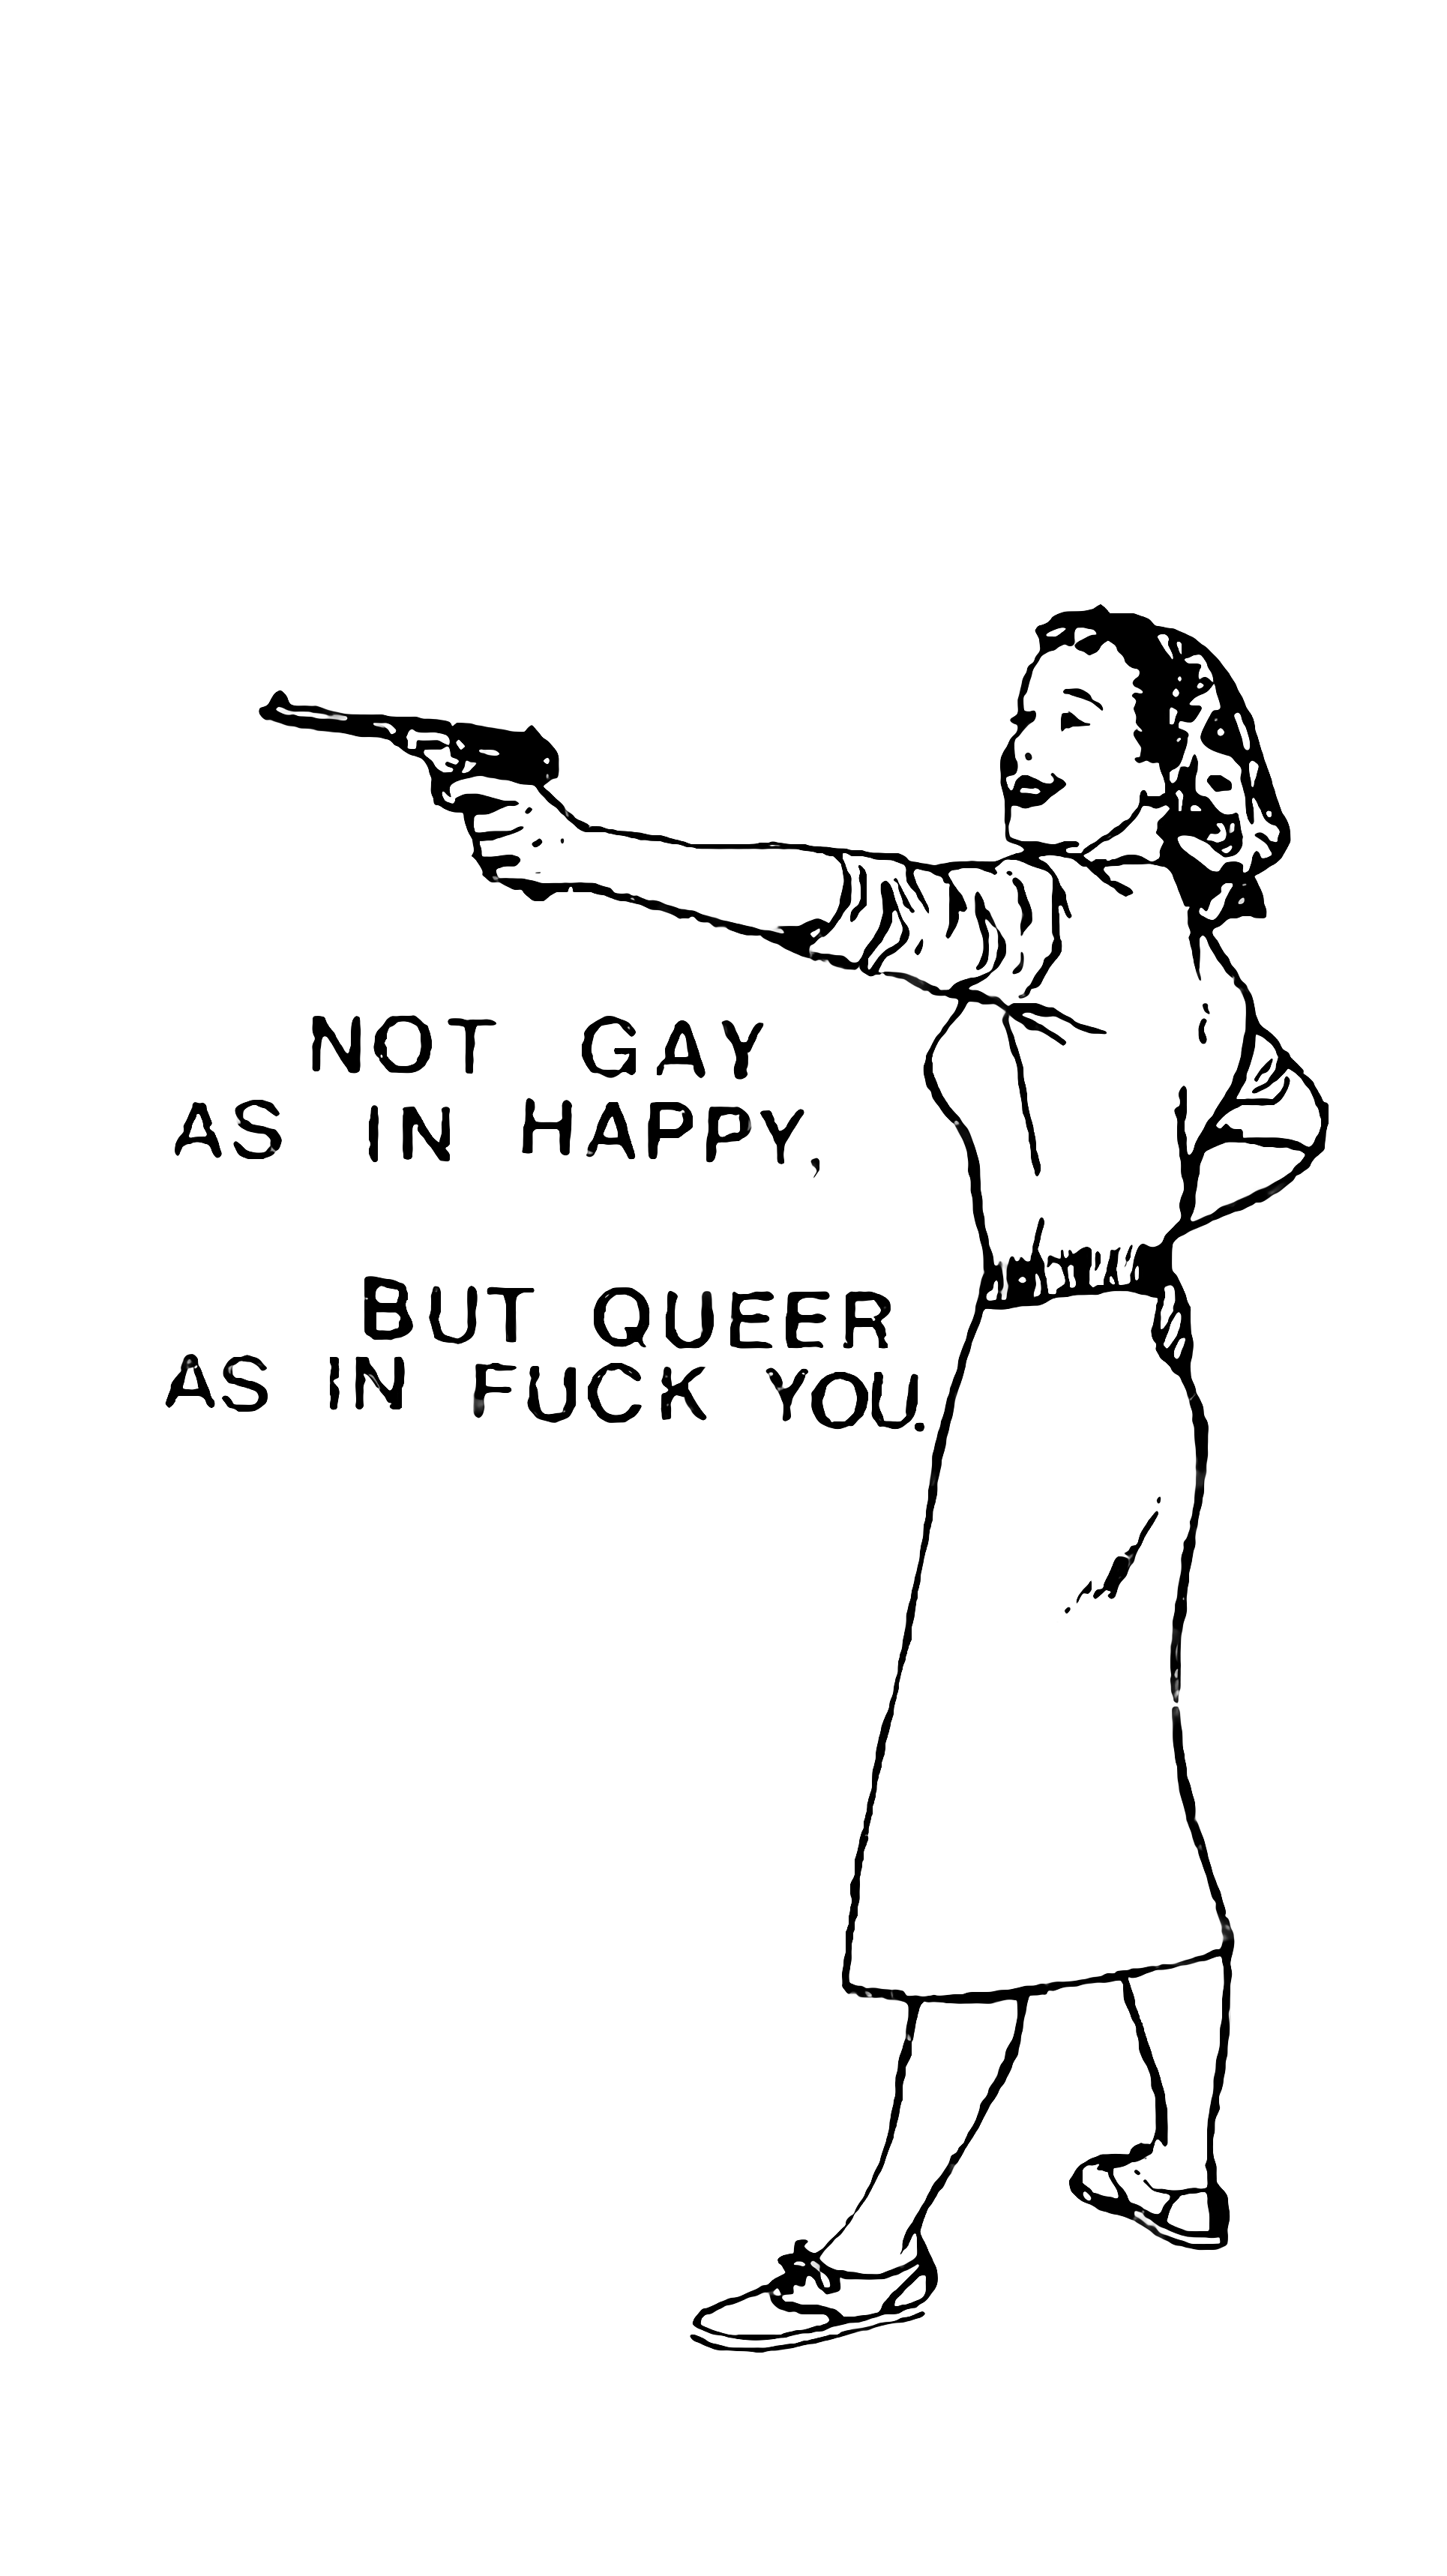 Figure 5: Queer Nation slogan, origin of quote and image unknown. Also used by Agatha in their 2009 song 'Queer as in Fuck You'